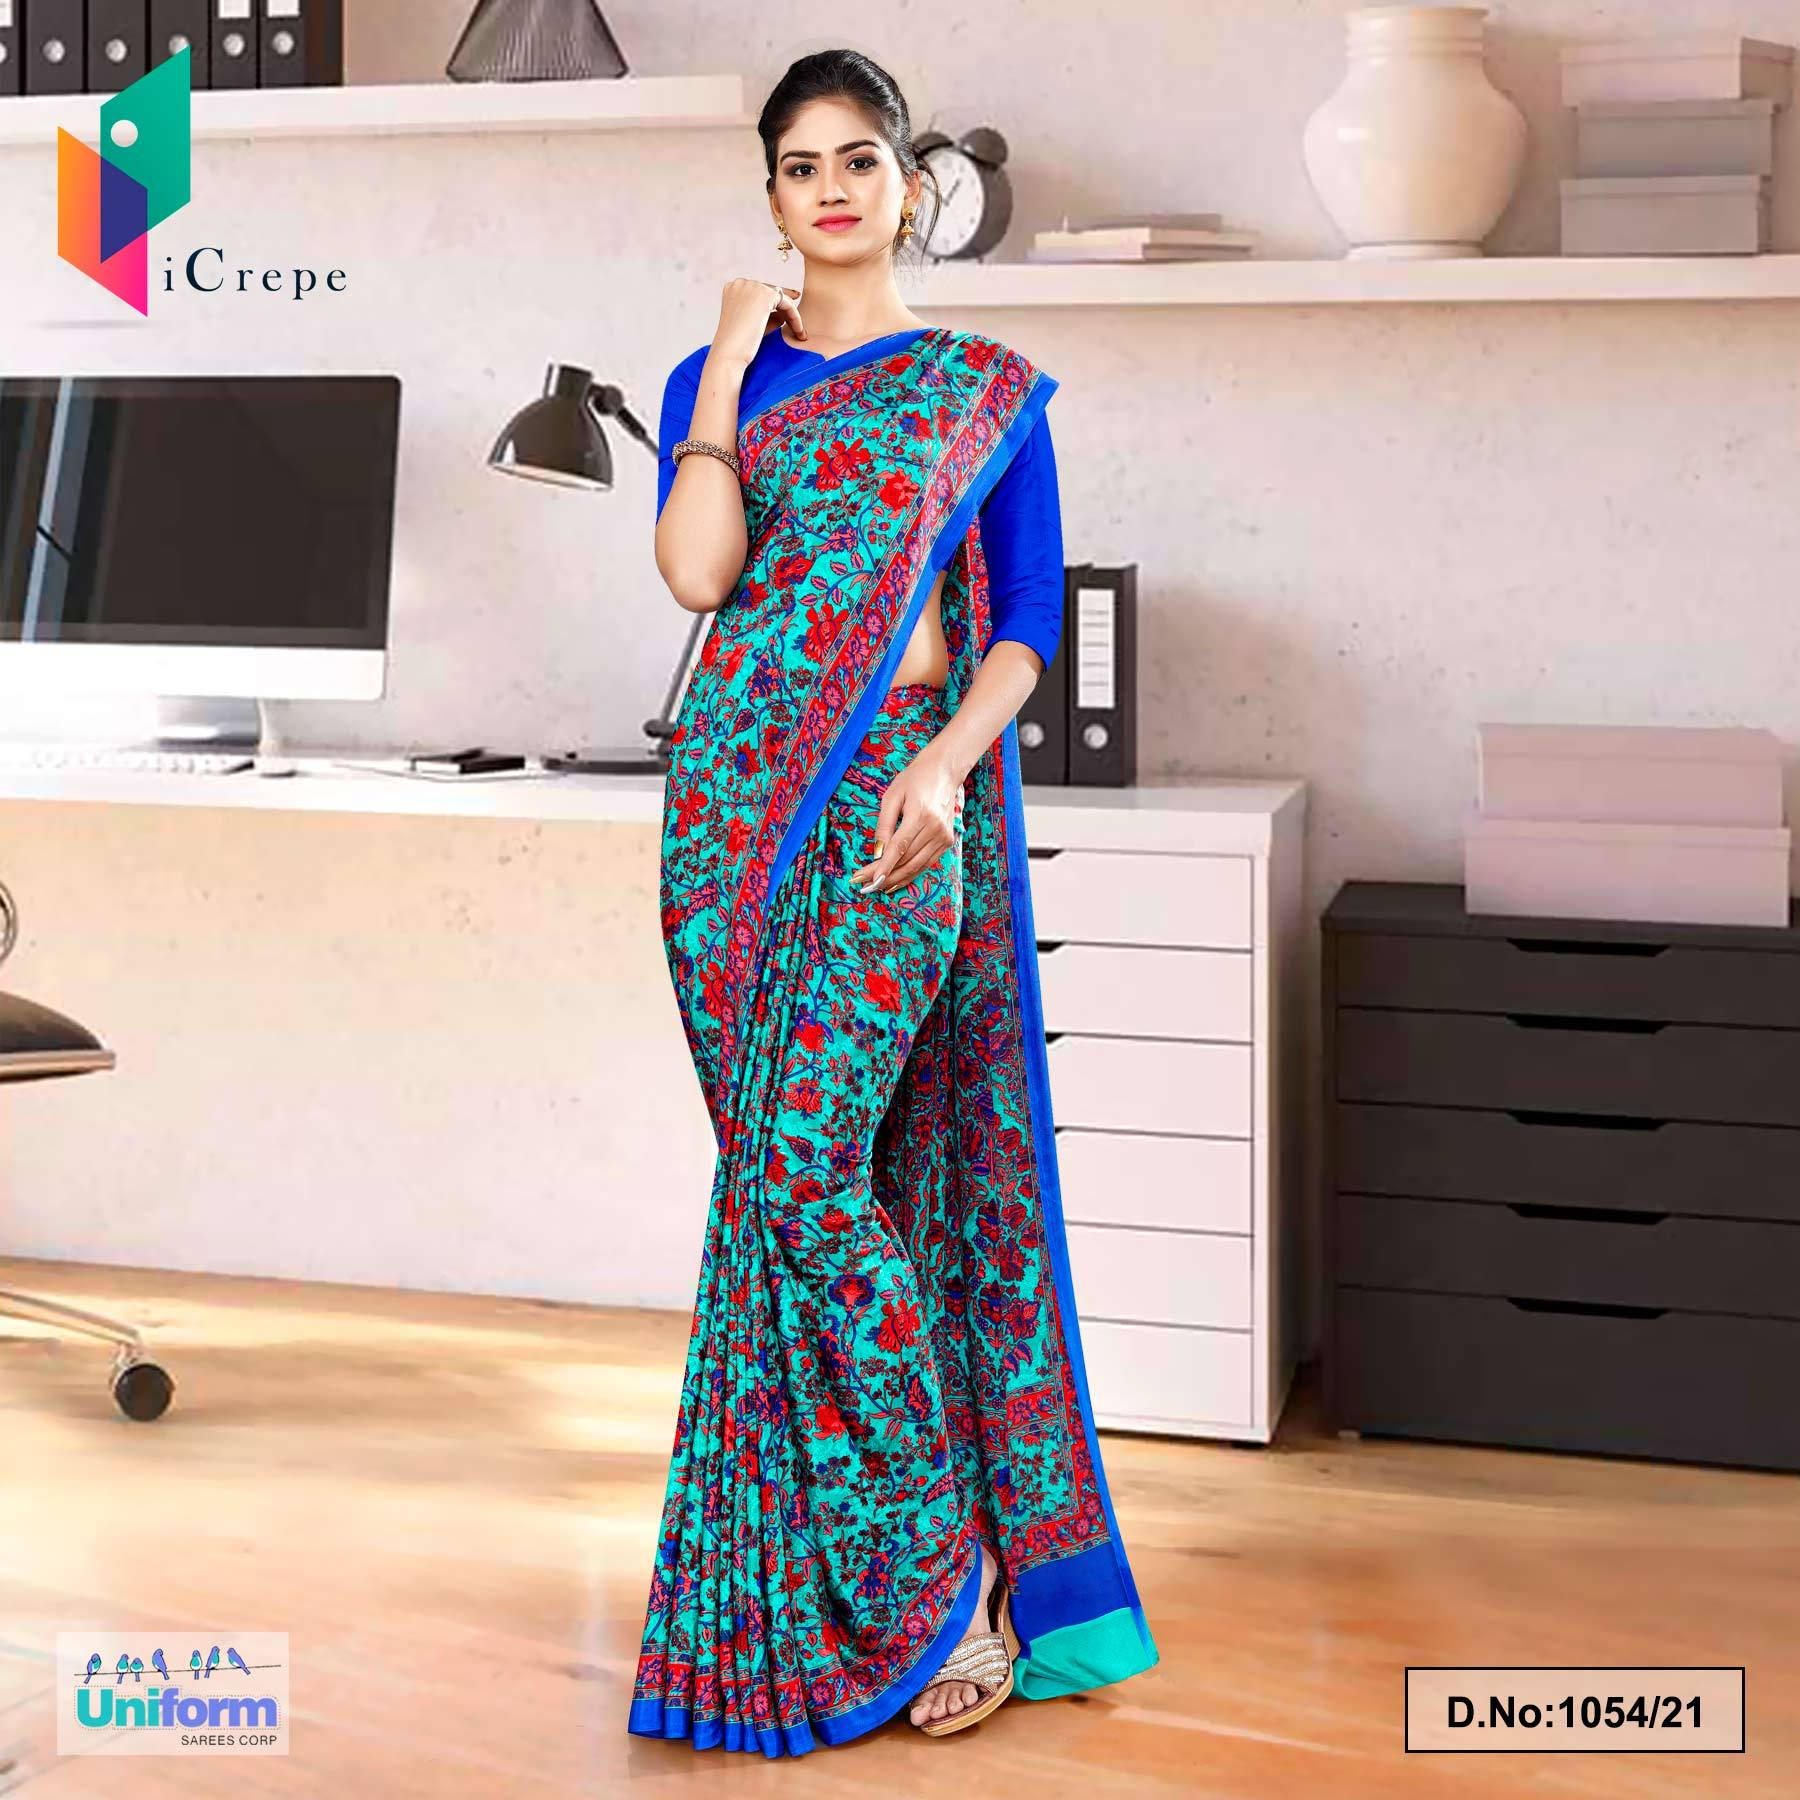 Sea Green Blue Flower Print Premium Italian Silk Crepe Uniform Sarees for Receptionist